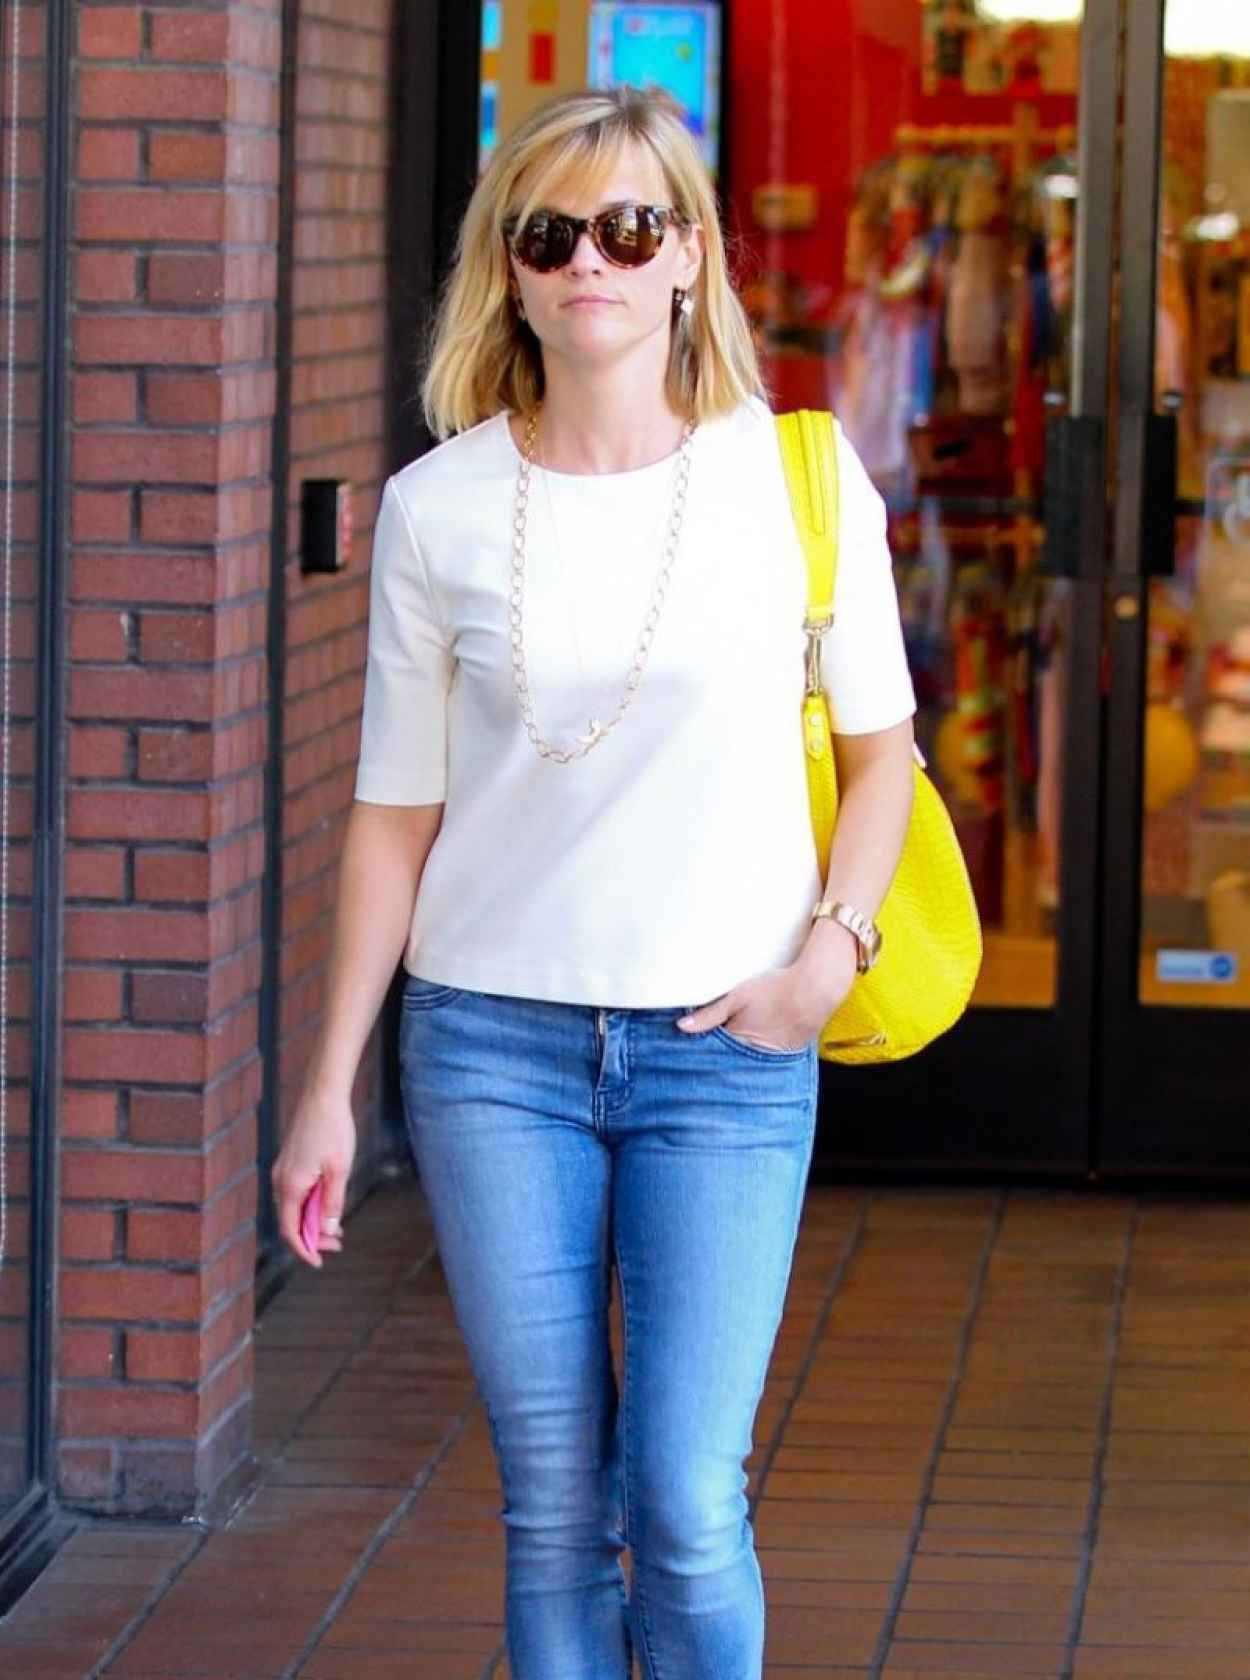 Reese Witherspoon in Jeans, Out for Lunch In Brentwood - February 2015-1